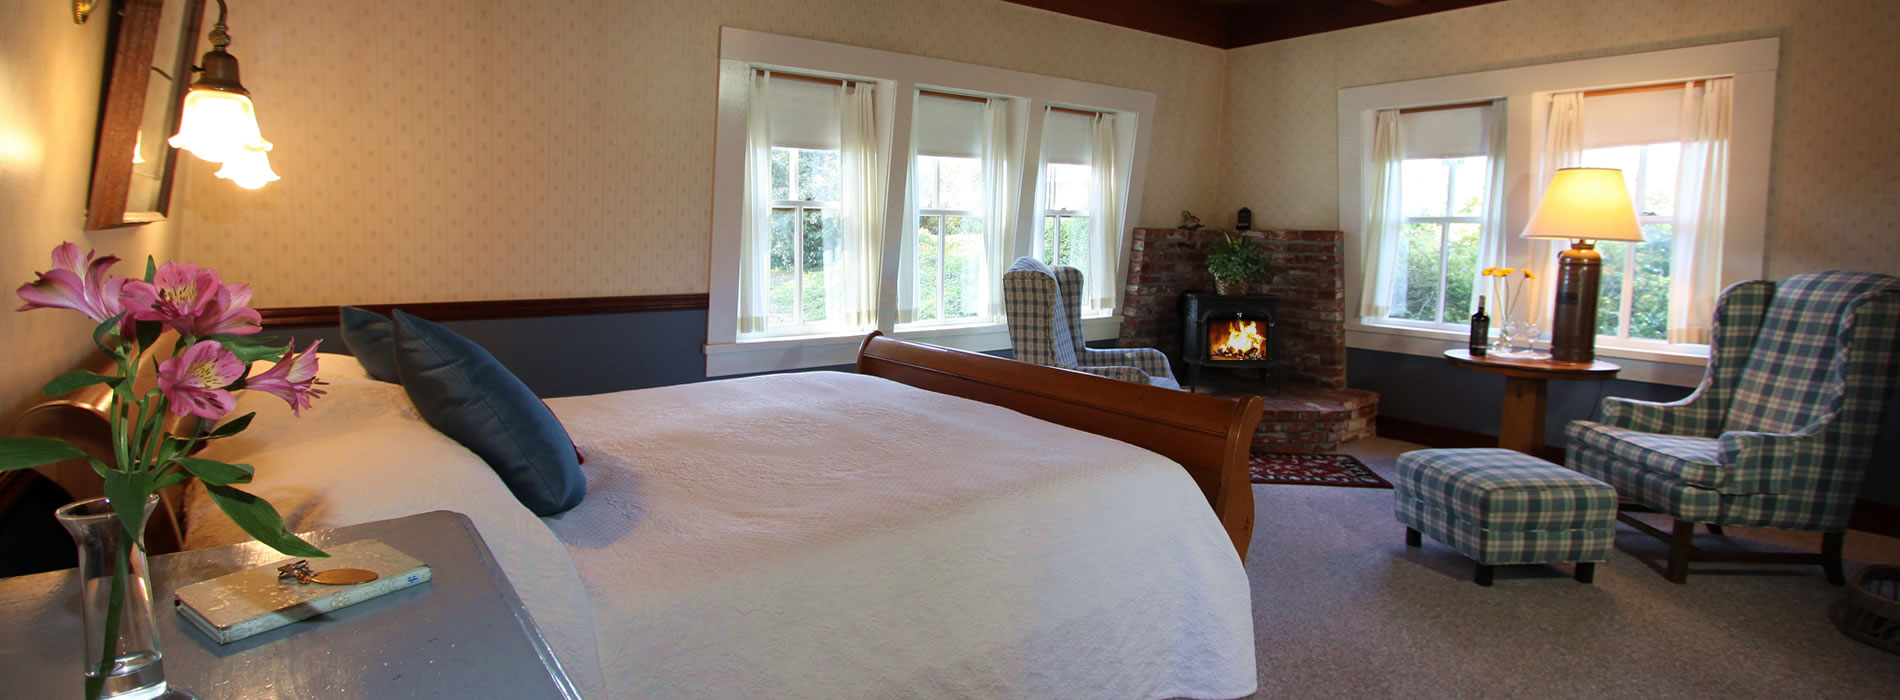 Mendocino Bed And Breakfast Inn Specials Packages